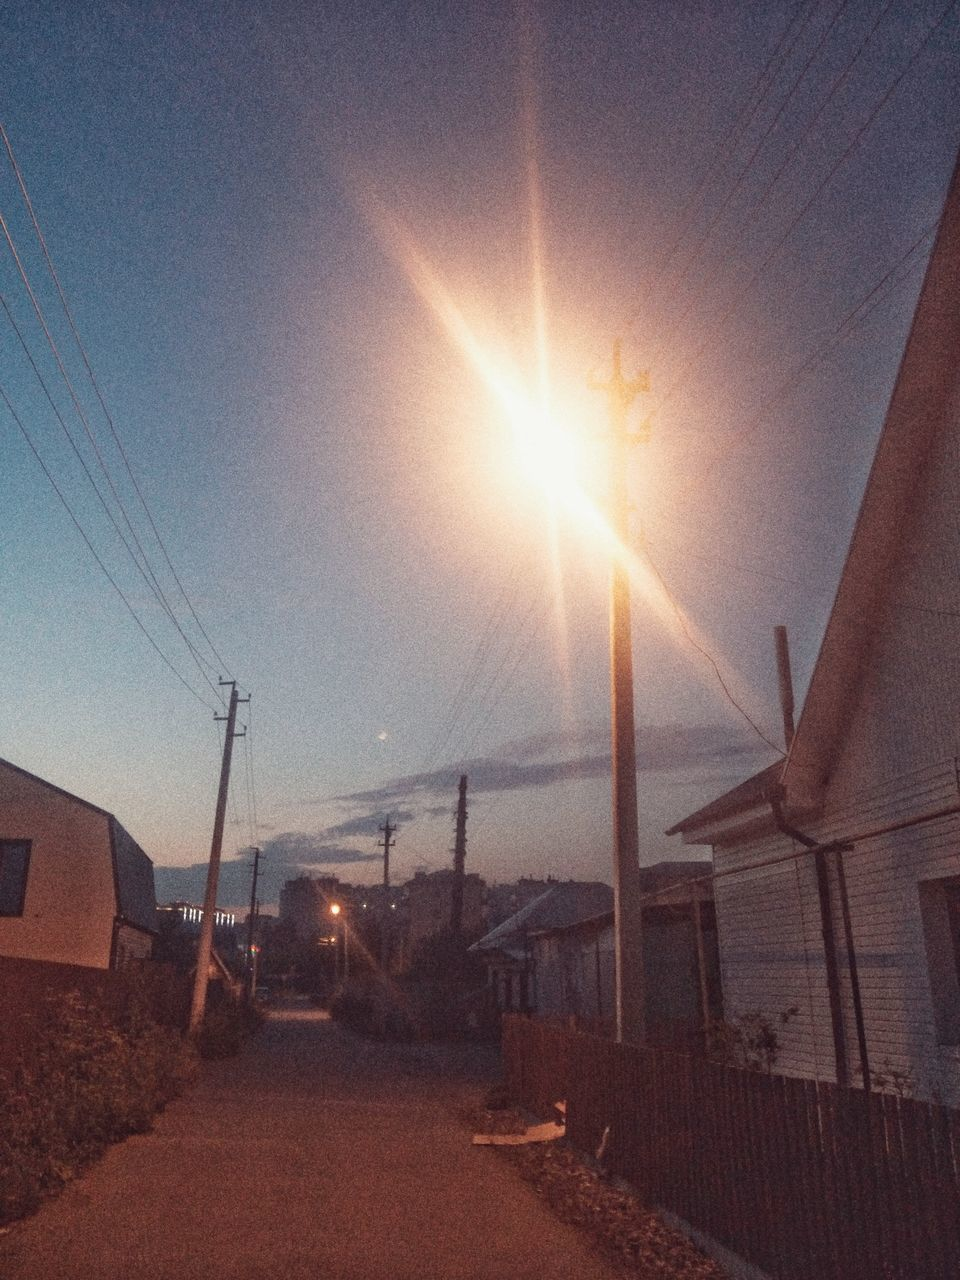 sky, sun, sunlight, lens flare, sunbeam, nature, transportation, no people, sunset, architecture, mode of transportation, built structure, outdoors, bright, day, sunny, building exterior, land, road, environment, brightly lit